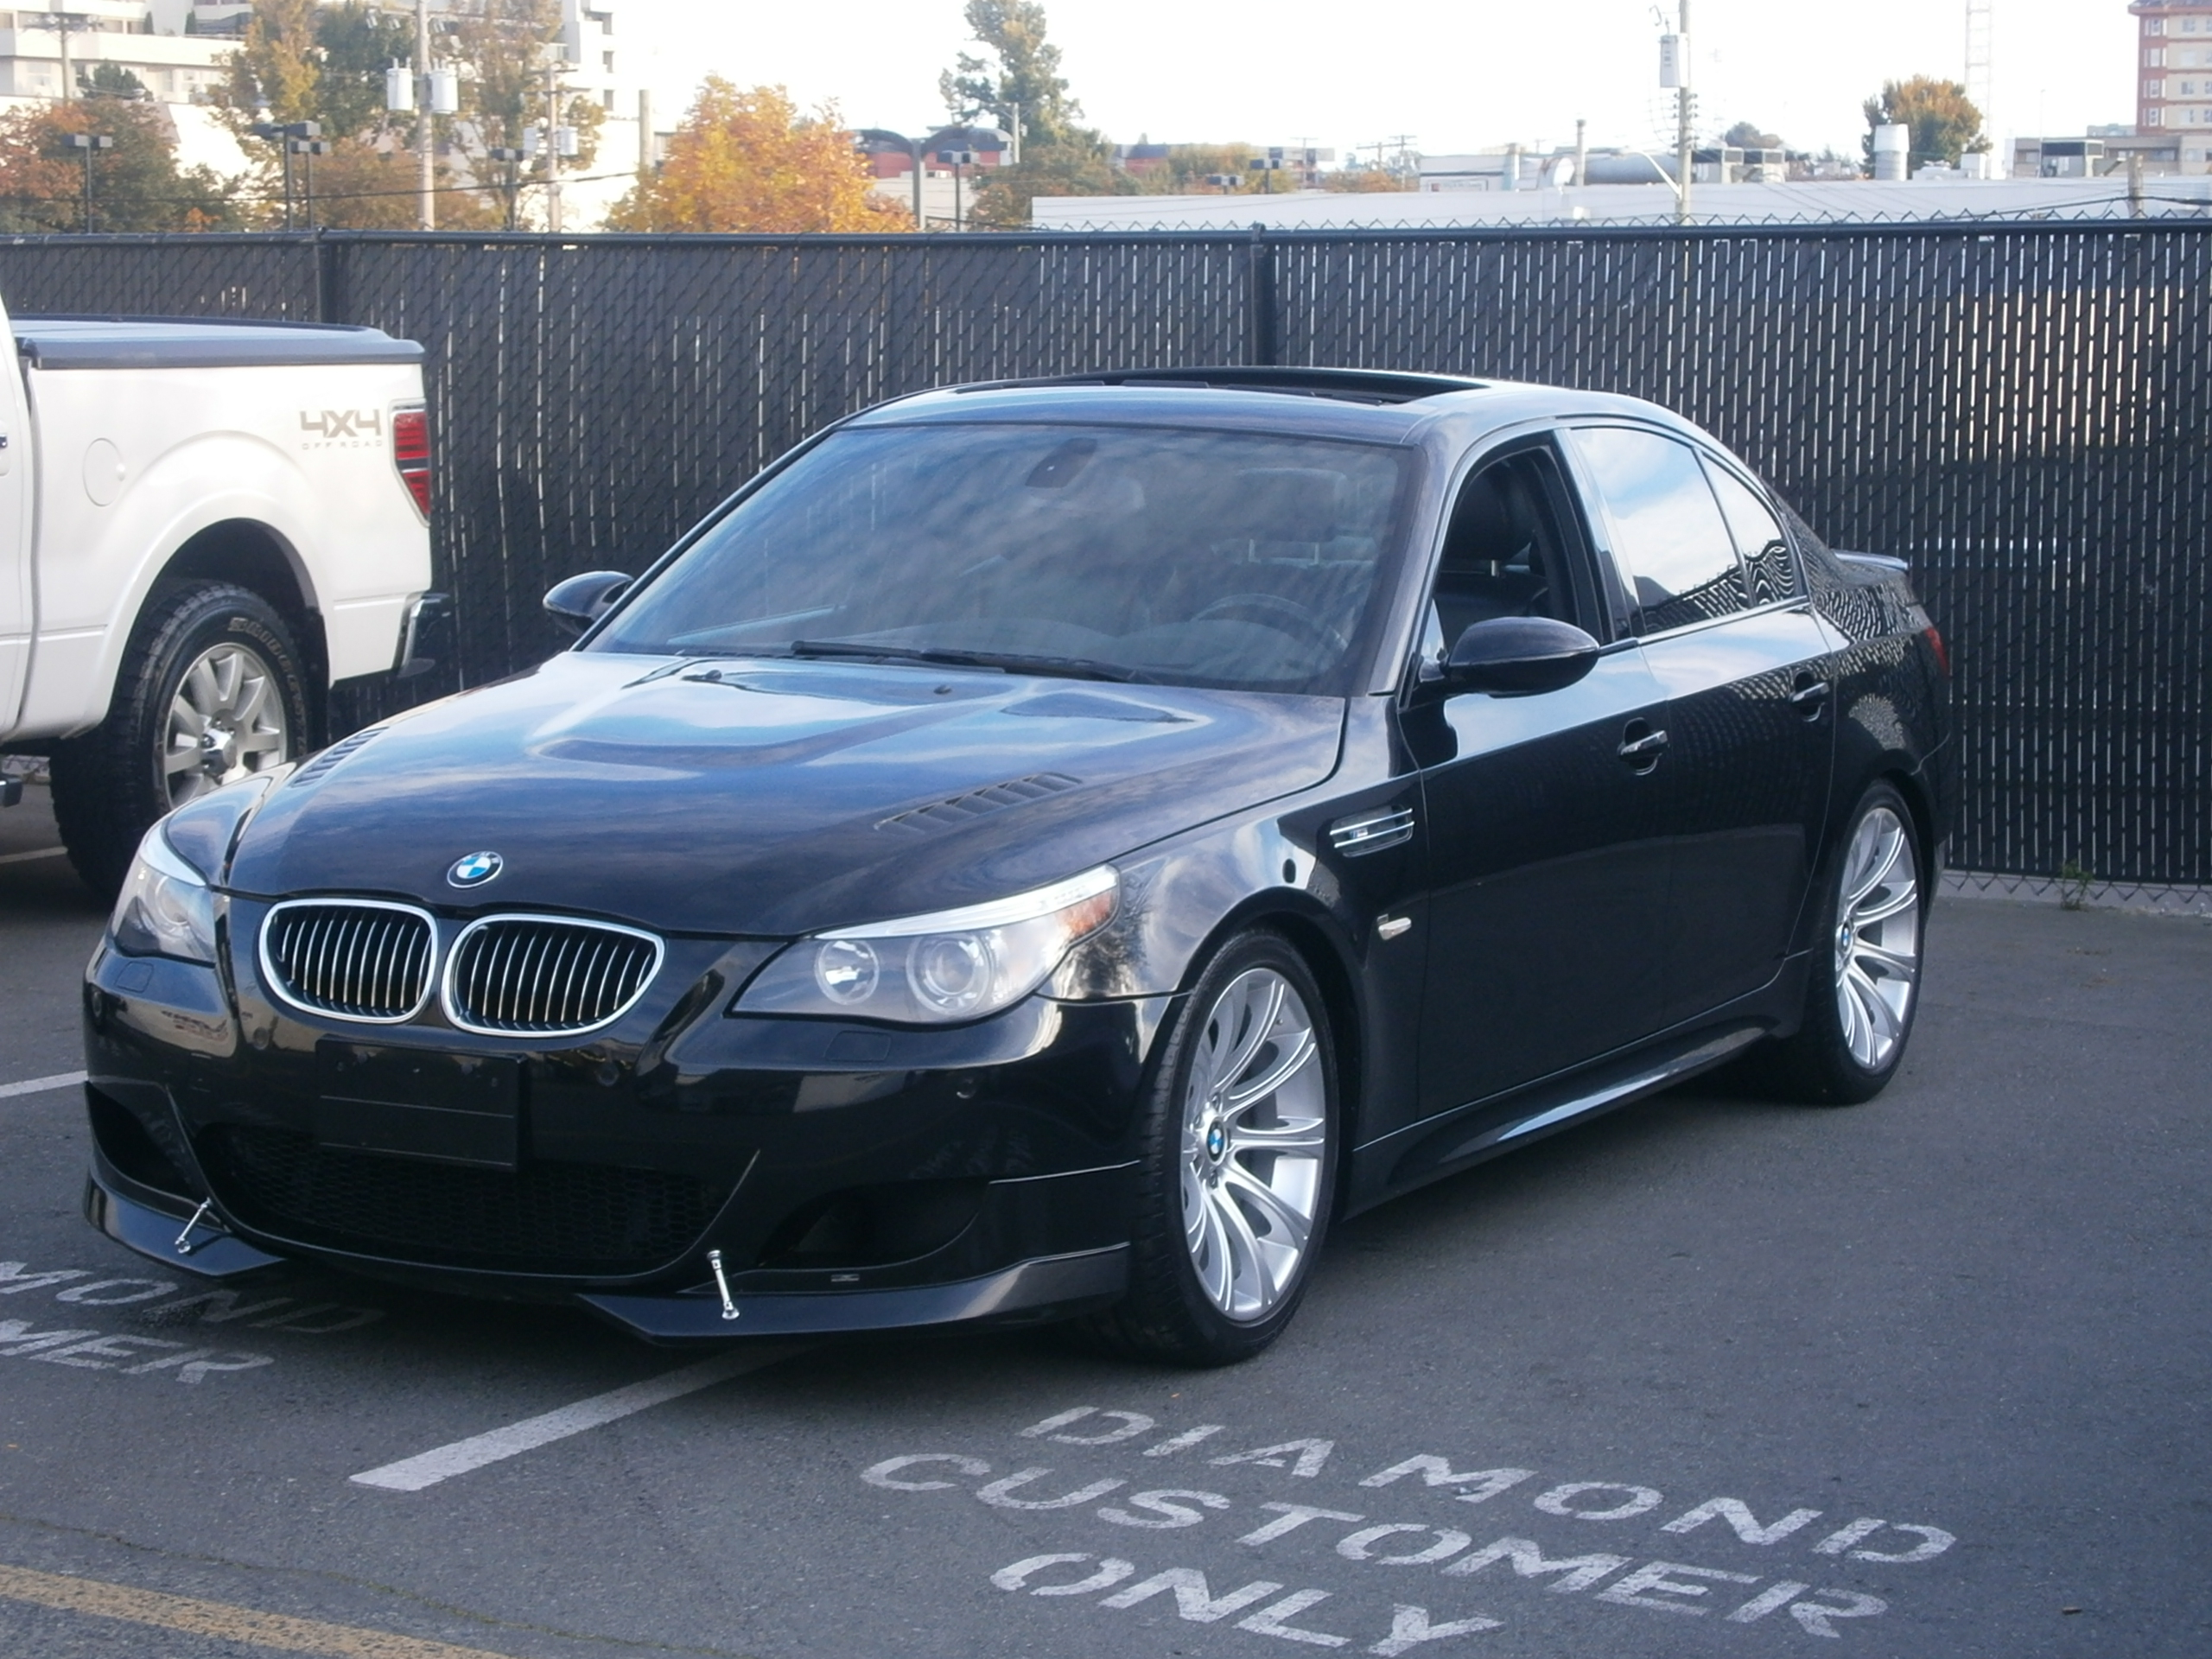 2006 Bmw M5 Forward Auto Gallery